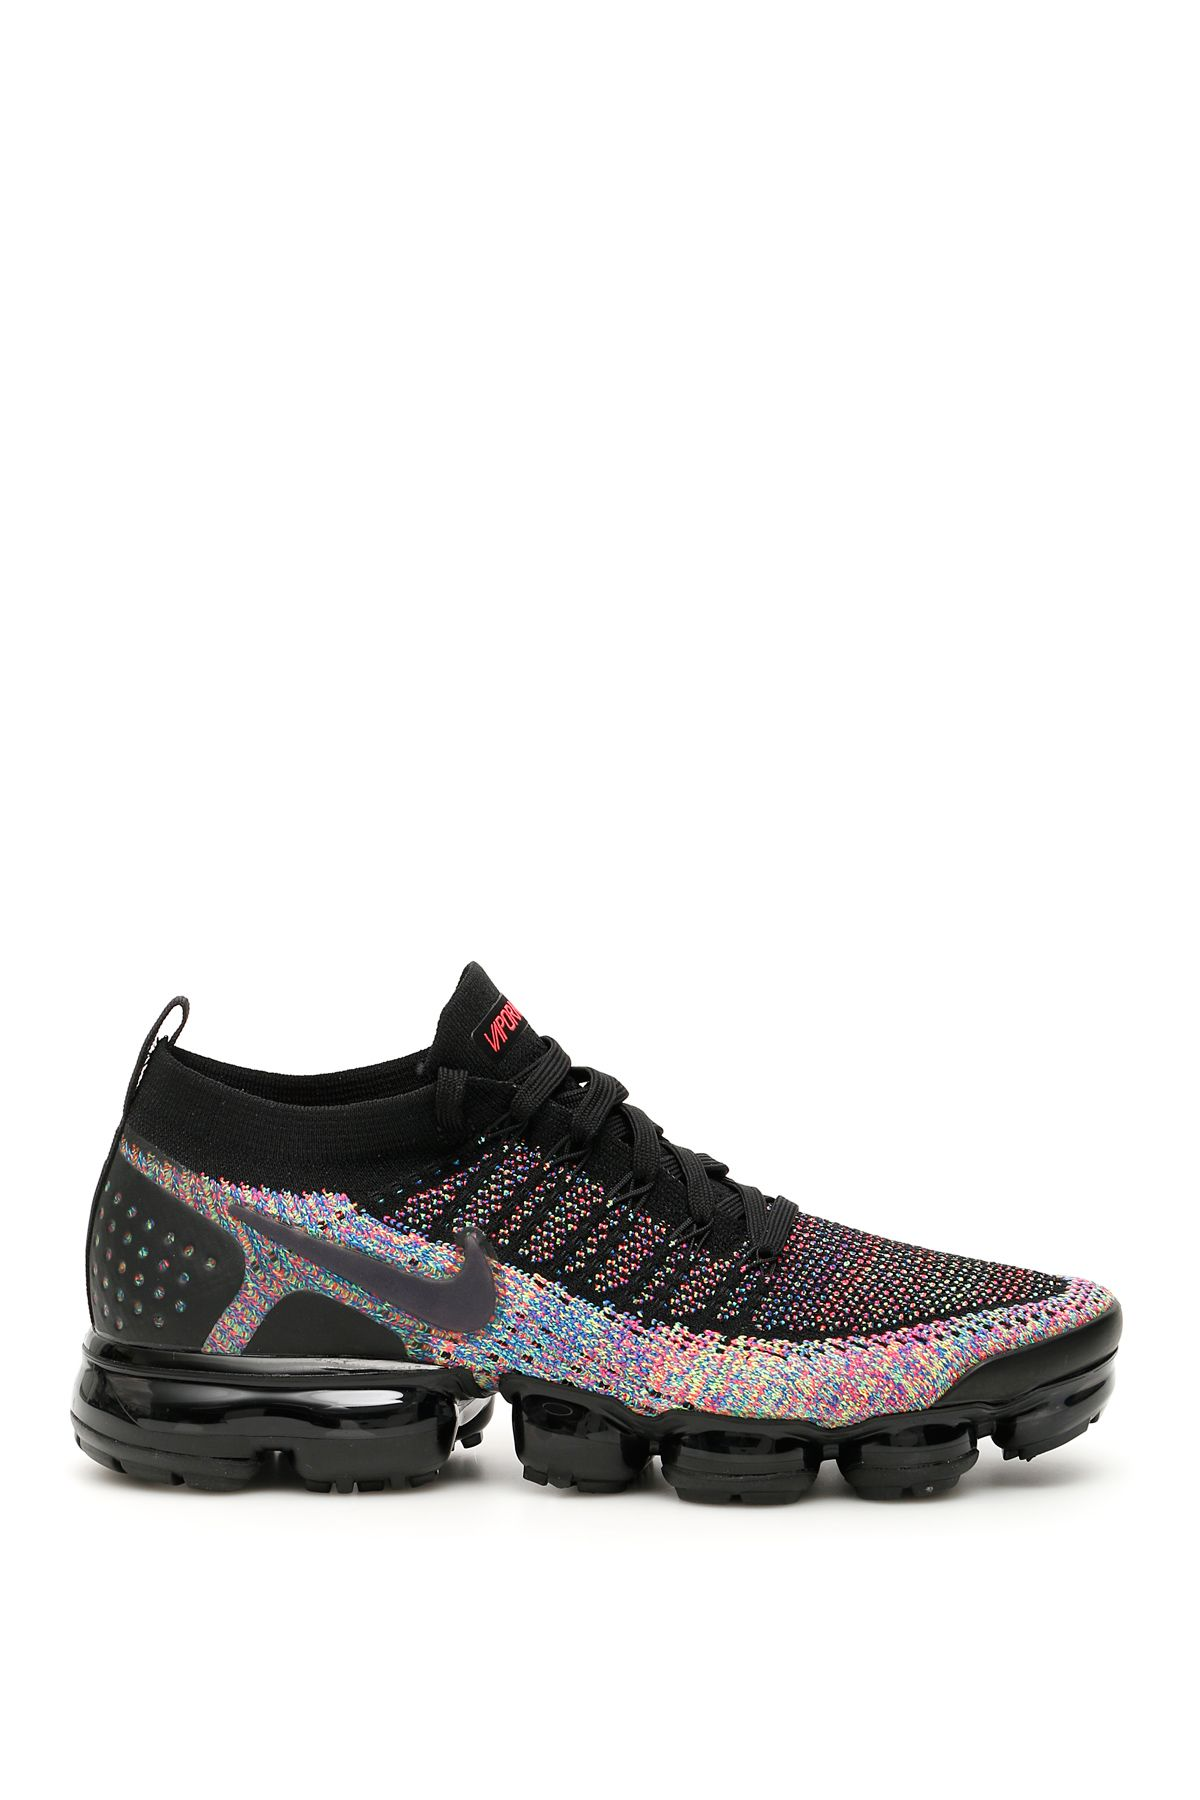 4a53127f919 Nike Nike Air Vapormax Flyknit 2 Sneakers - BLACK RACER PINK RACER ...